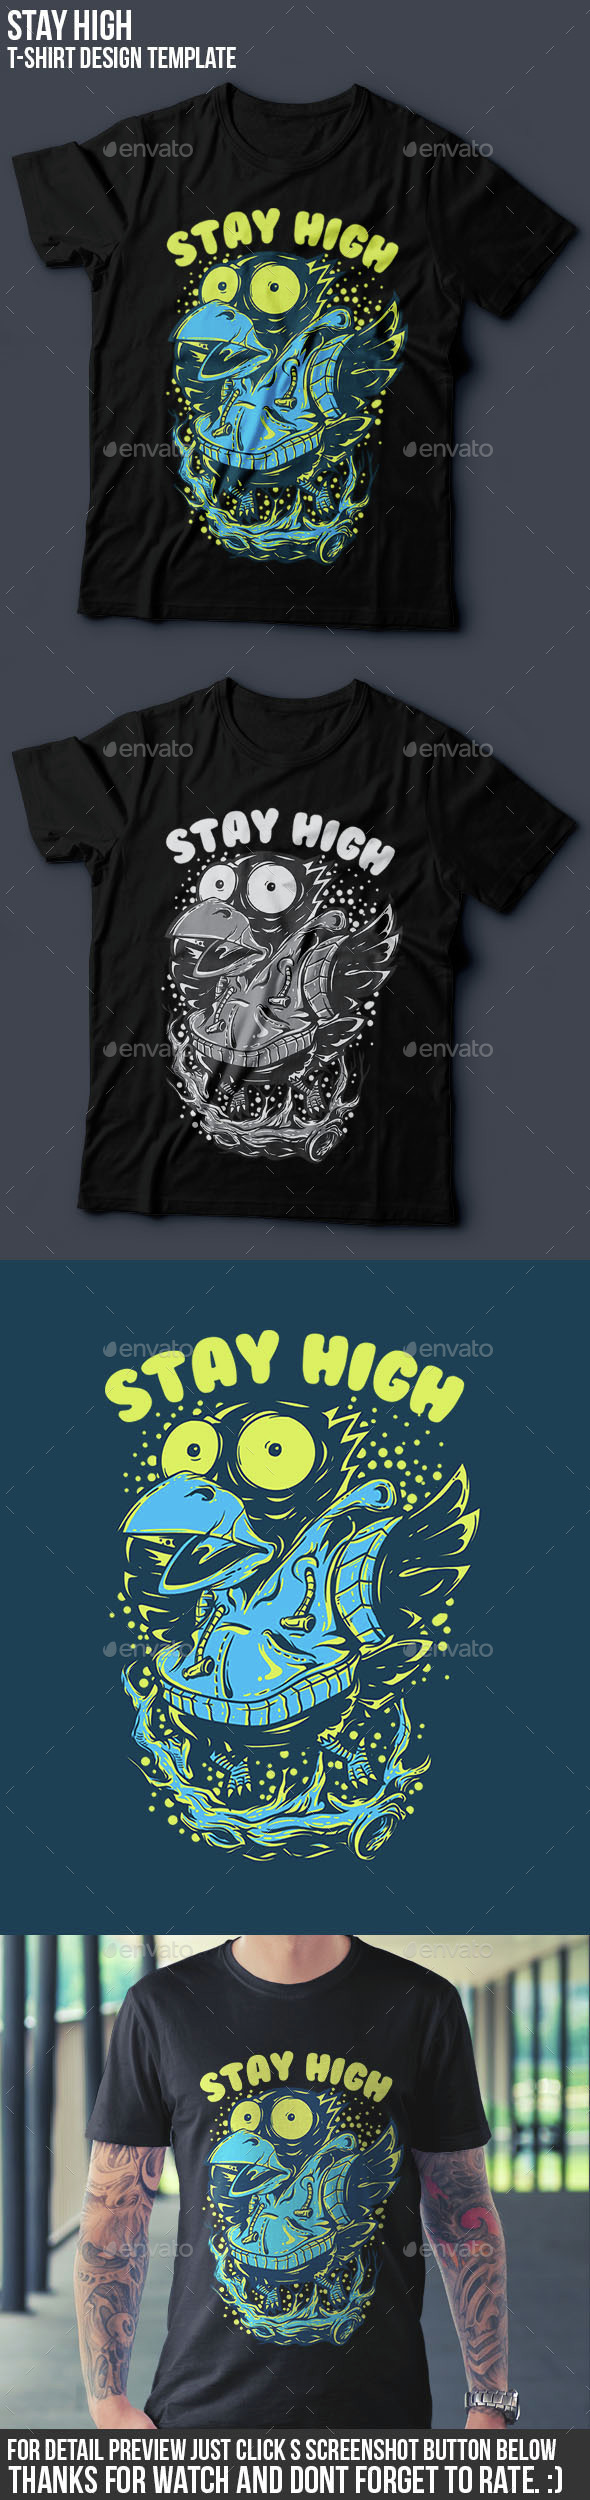 Stay High T-Shirt Design